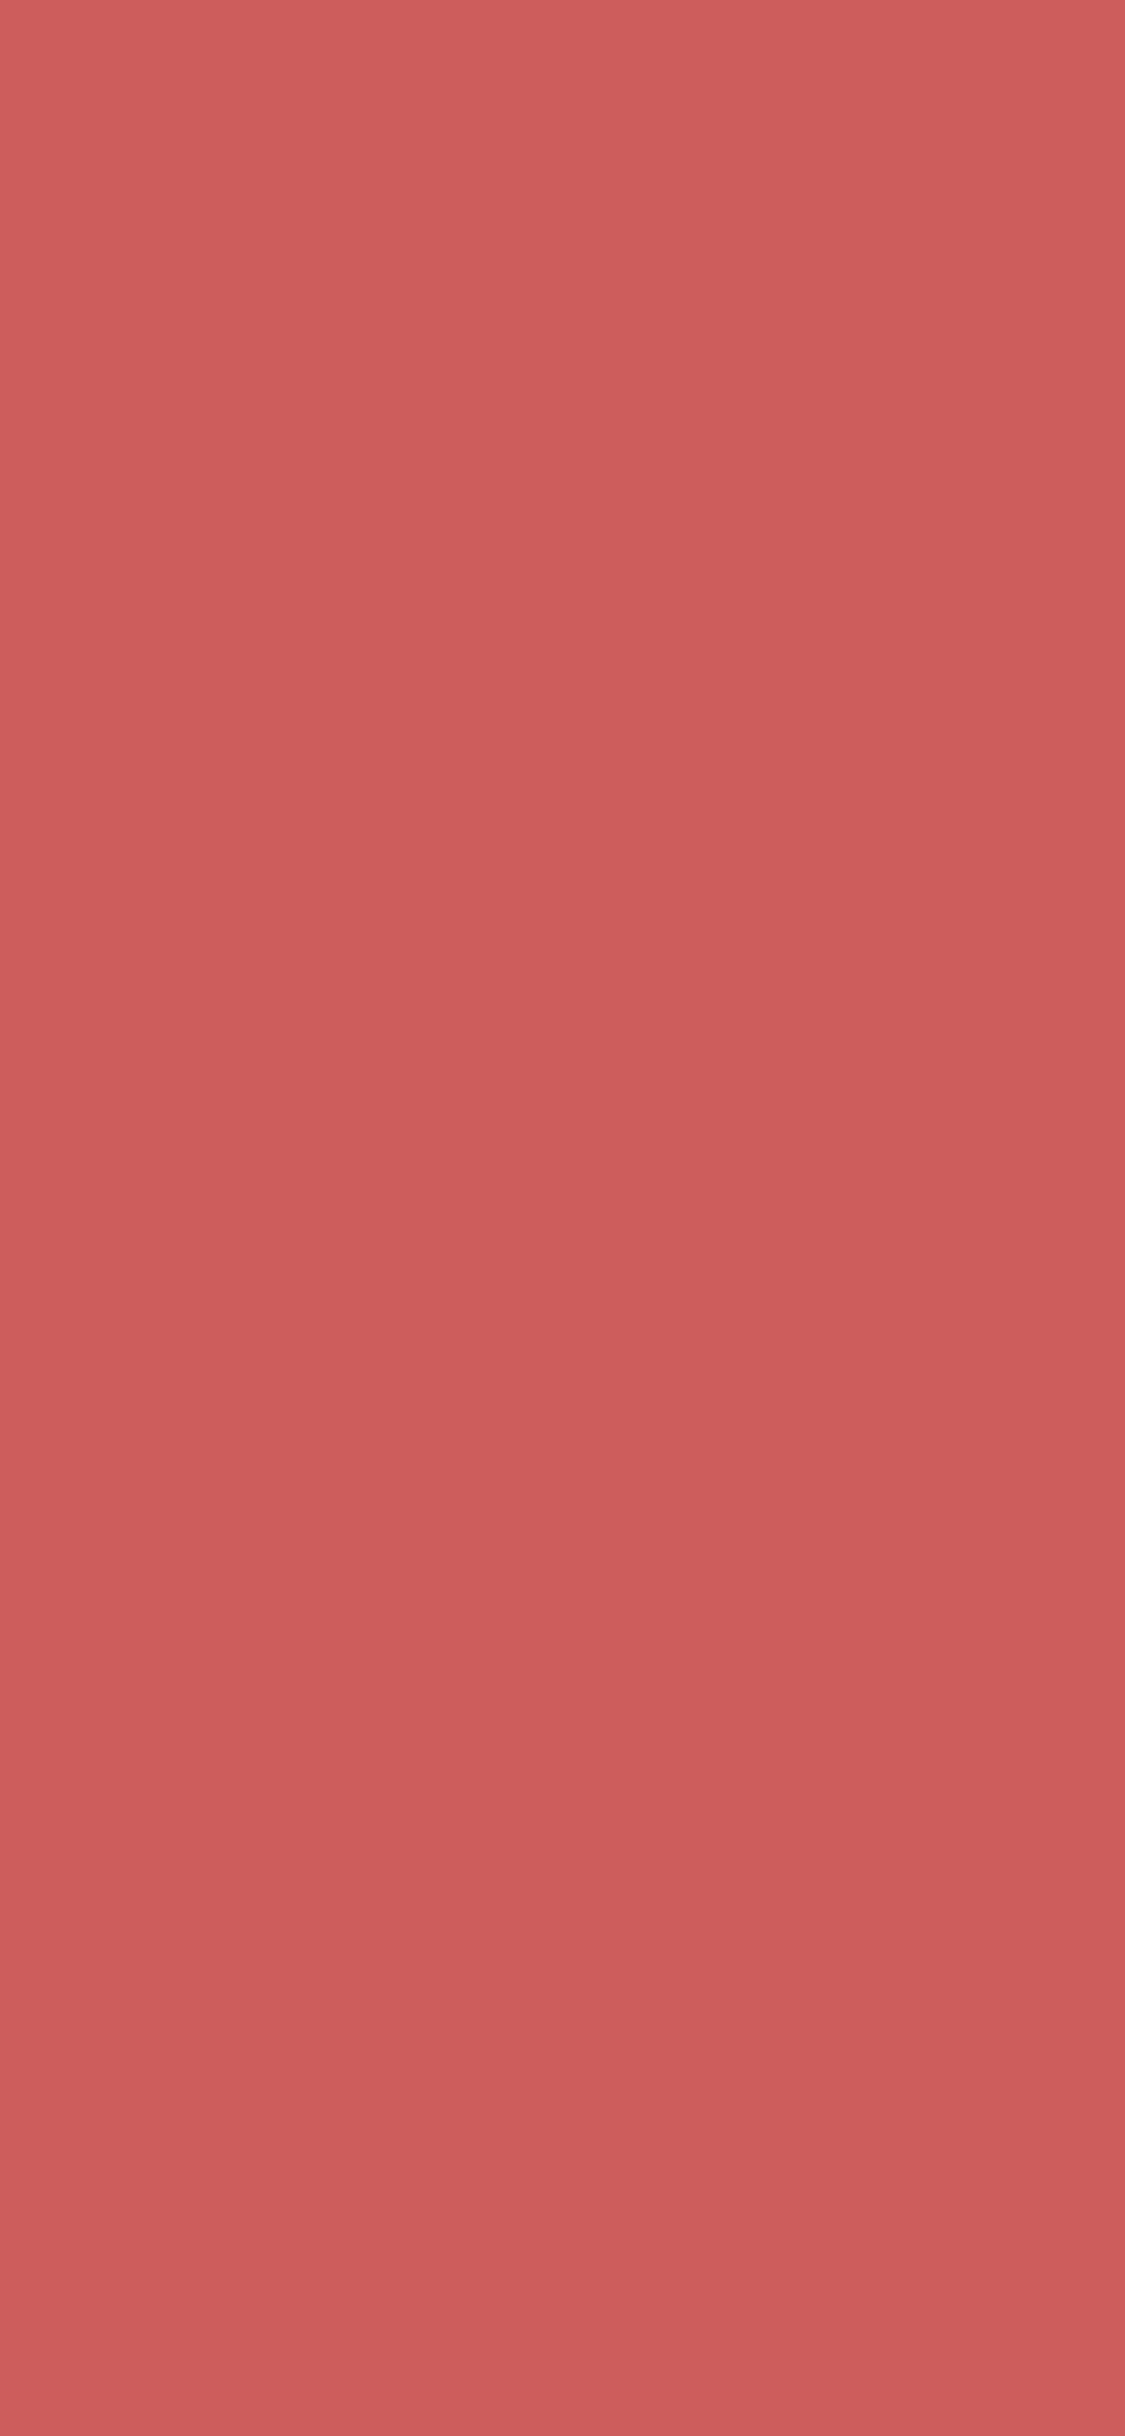 1125x2436 Indian Red Solid Color Background